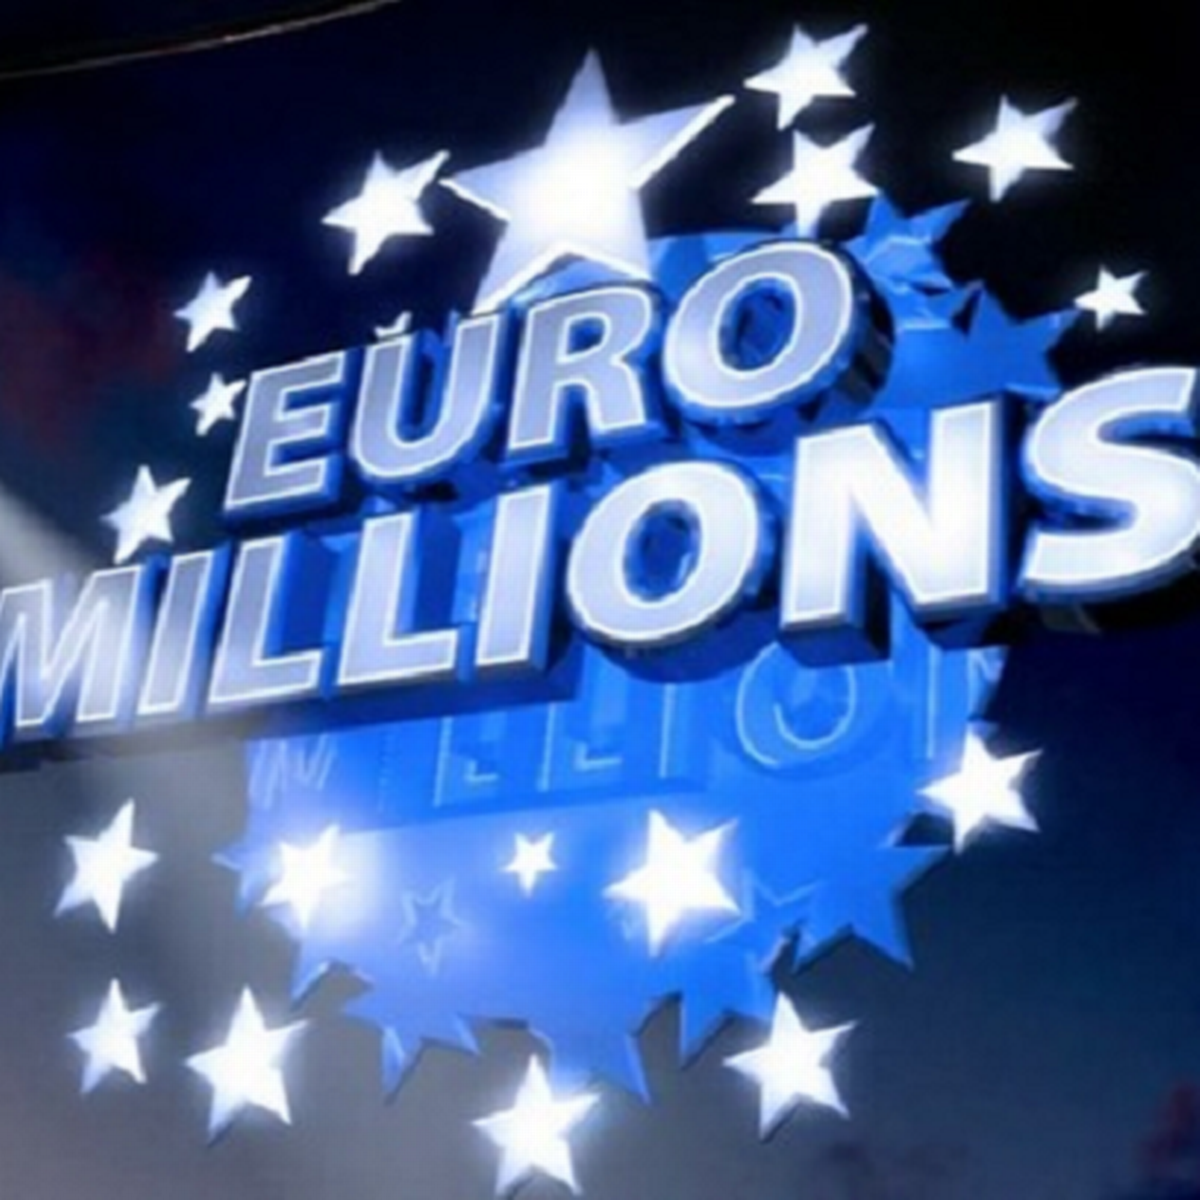 Euromillions results for 5th august 2016